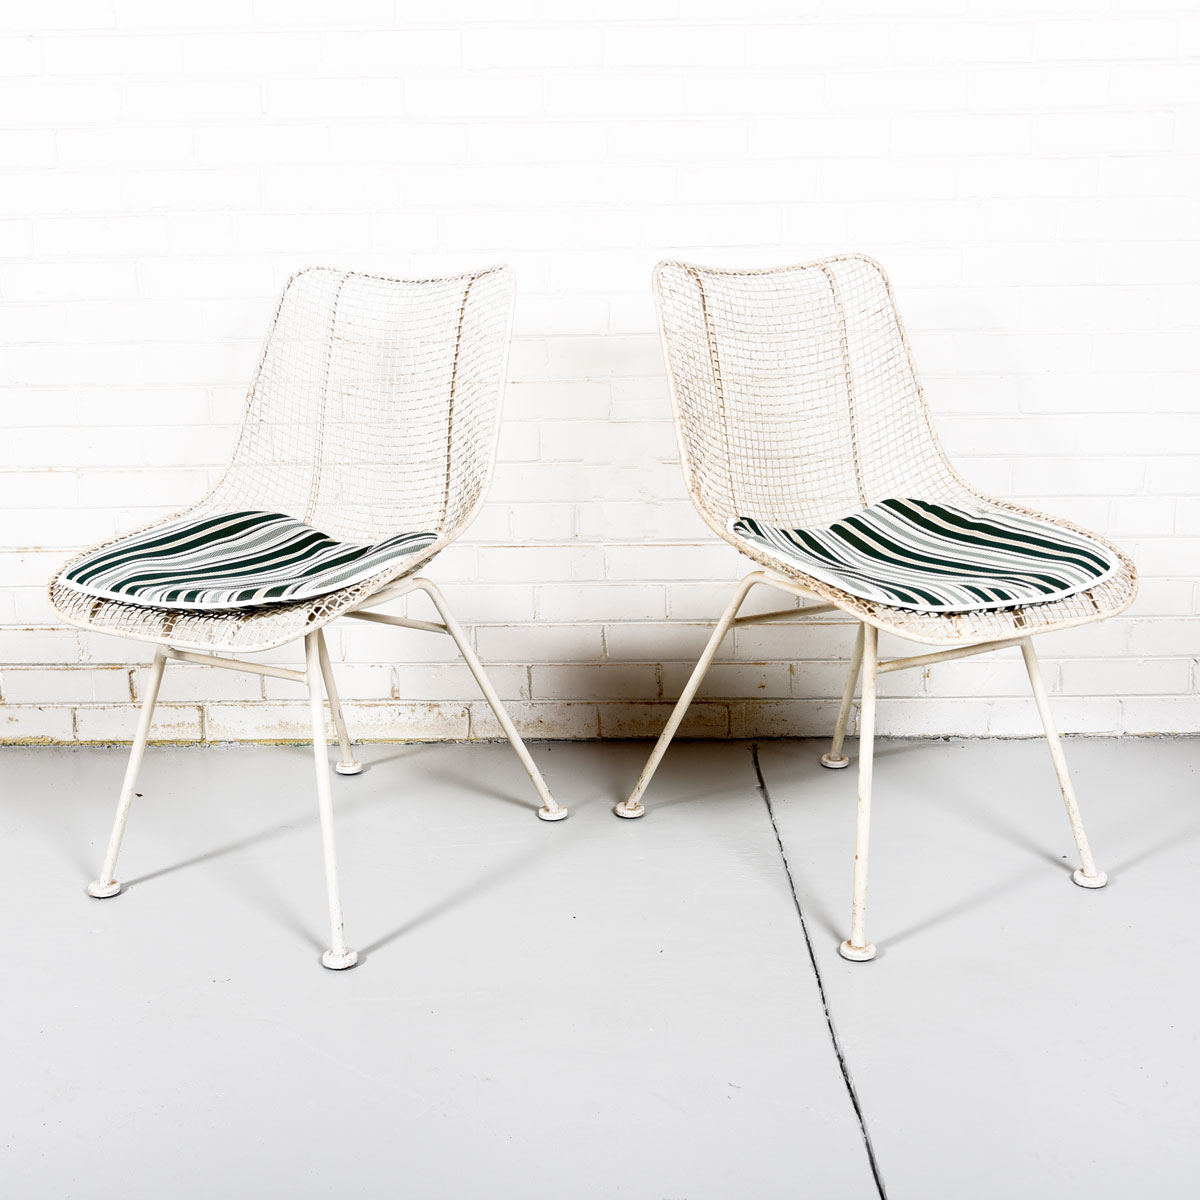 1950s Sculptura Set of 4 Patio Chairs (2 arm + 2 side) by Russell Woodard